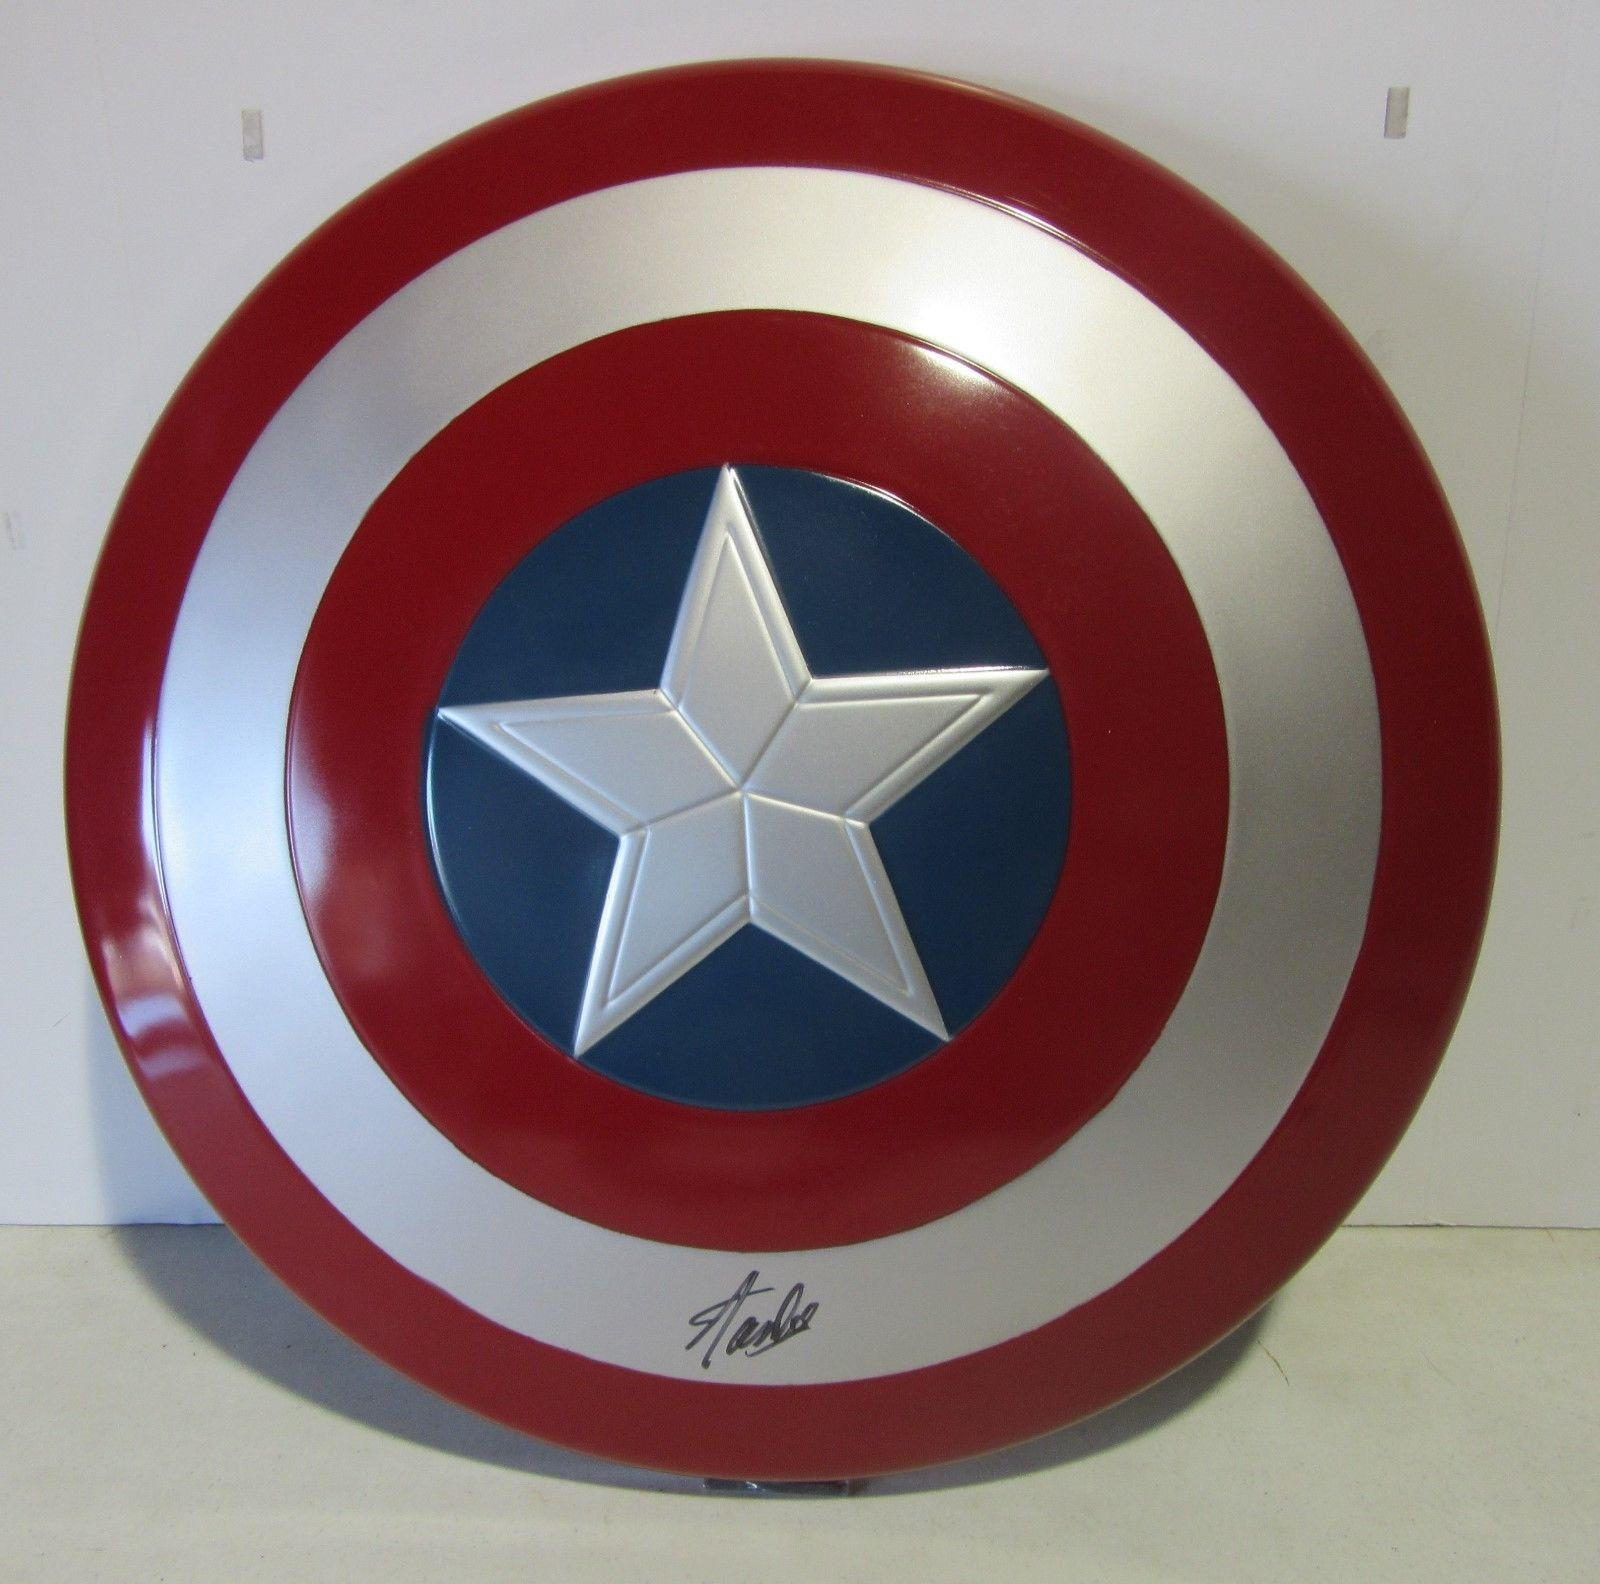 Stan Lee Signed Autographed Captain America Shield Marvel Comics Psa/dna Ac32433